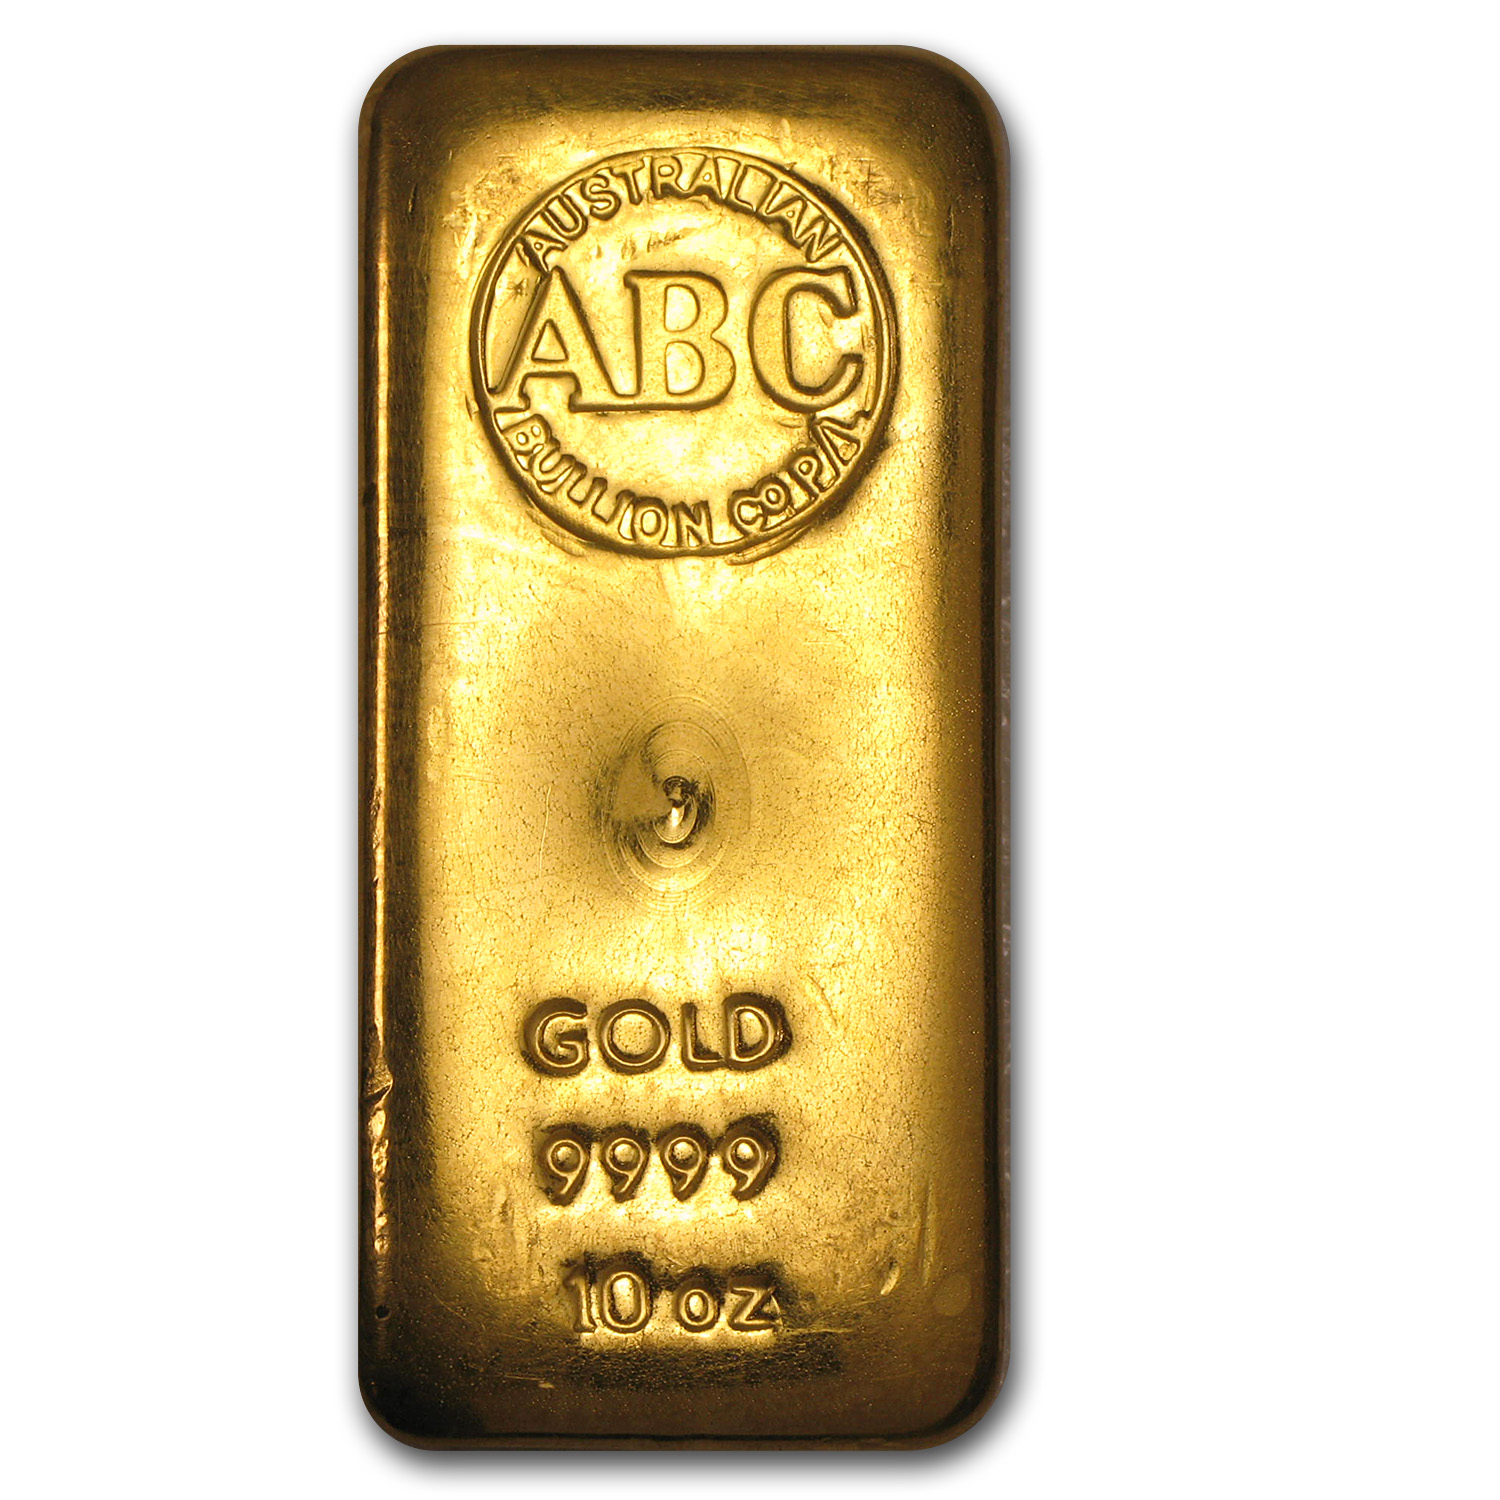 10 oz Gold Bars - Australian Bullion Co. (Loaf-Style)